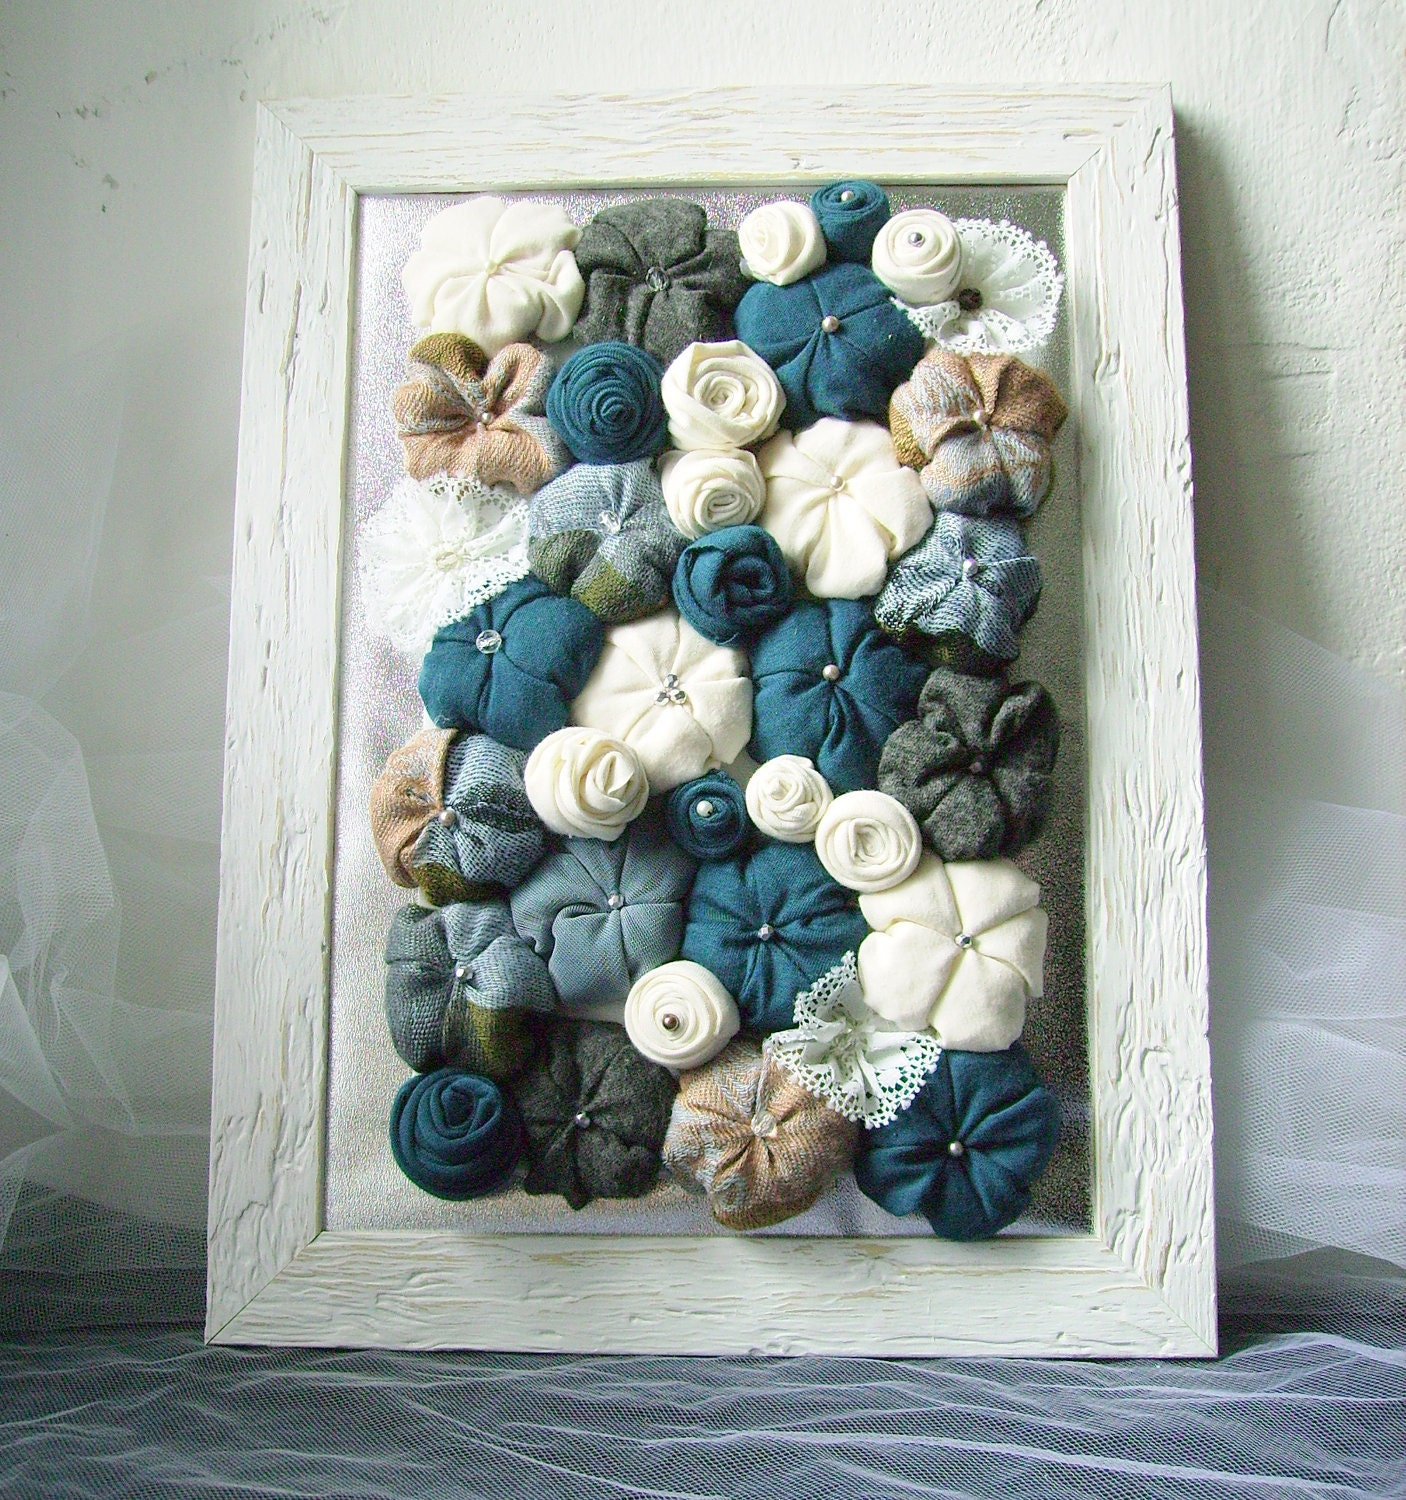 Fabric flower art shabby chic framed 3d design home decor for Fabric wall art